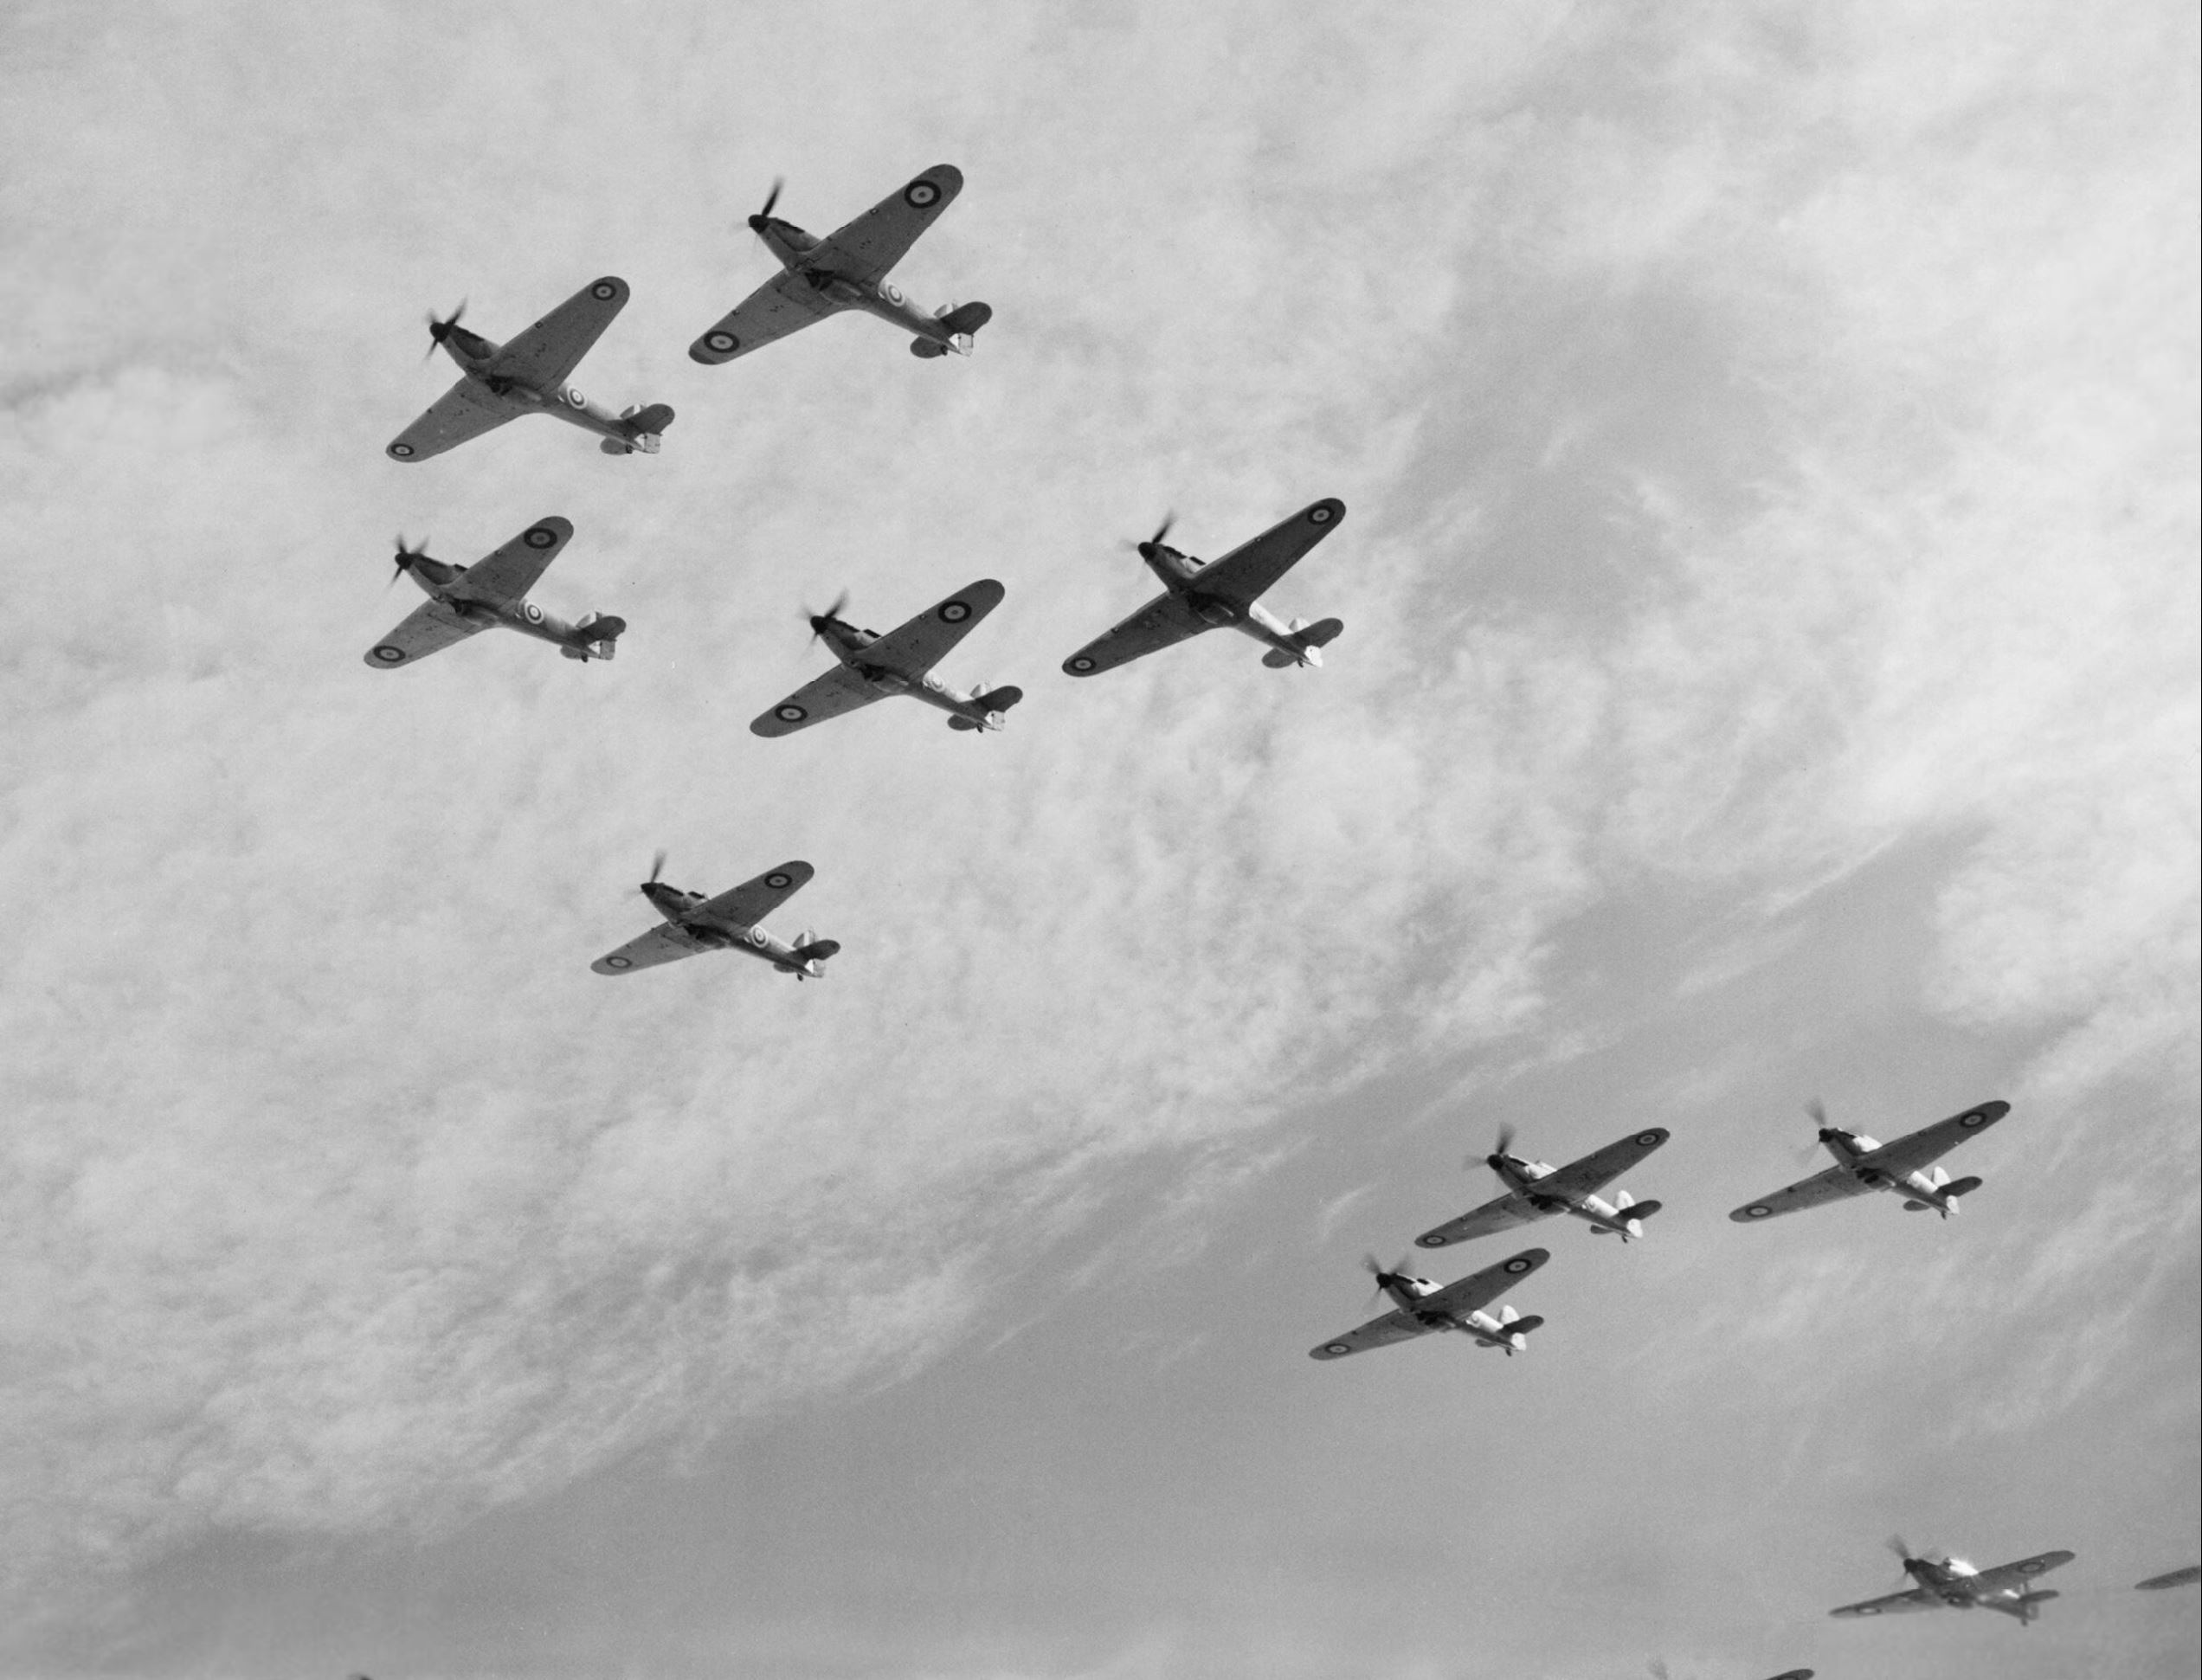 Hurricanes Is RAF 85Sqn in group formation Battle of Britain 1940 IWM C1500